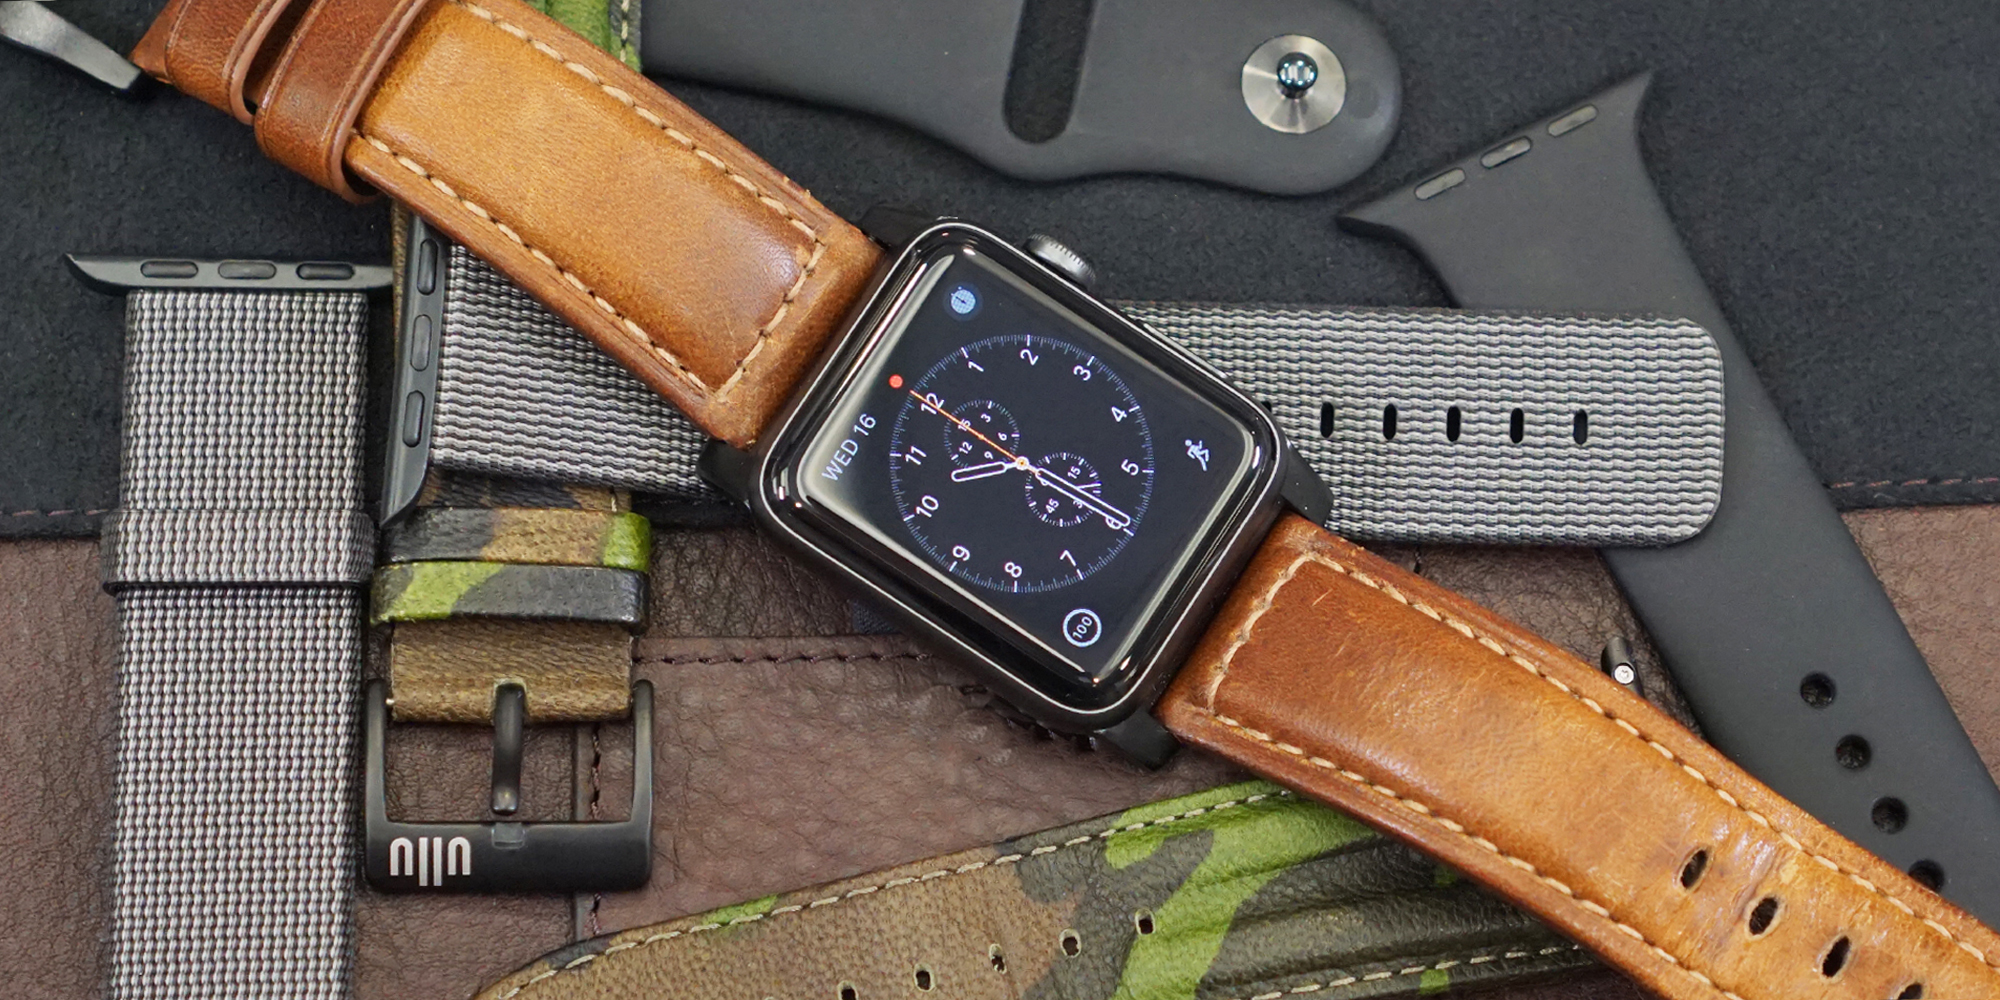 Apple Watch Series 2 Activity Tracker Review 2018